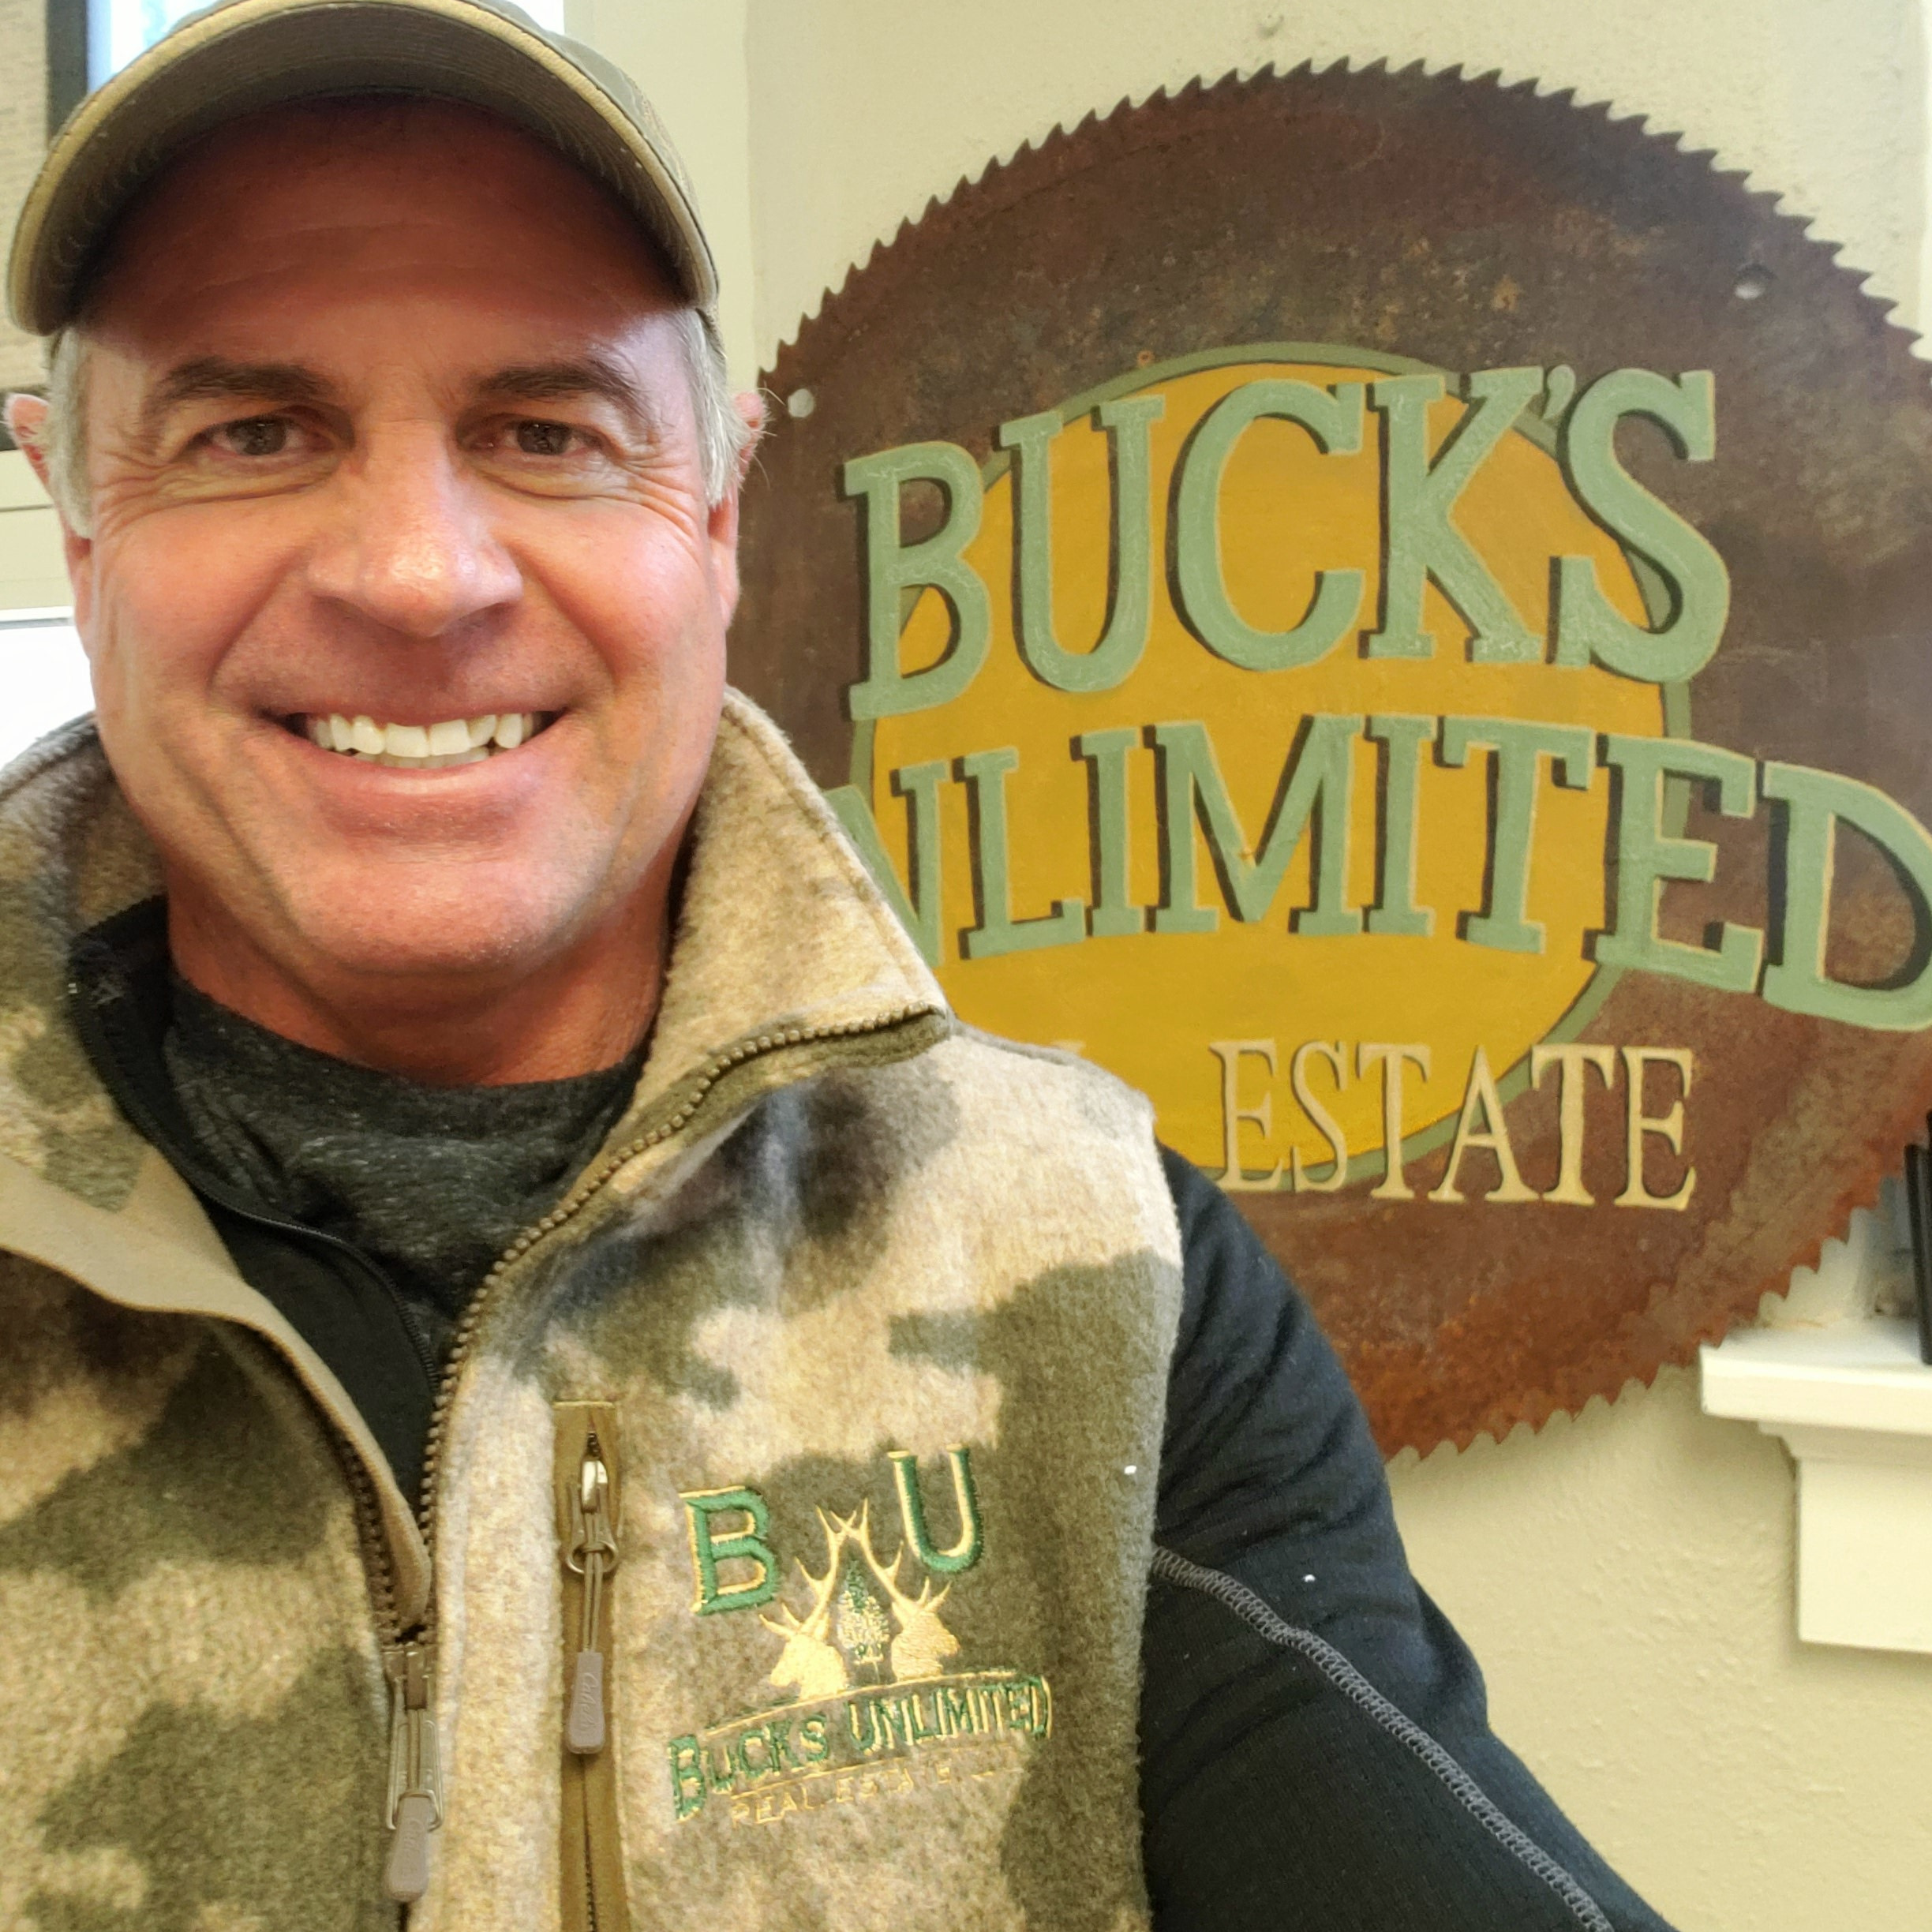 mark-buck-bucks-unlimited-real-estate-sign.jpg